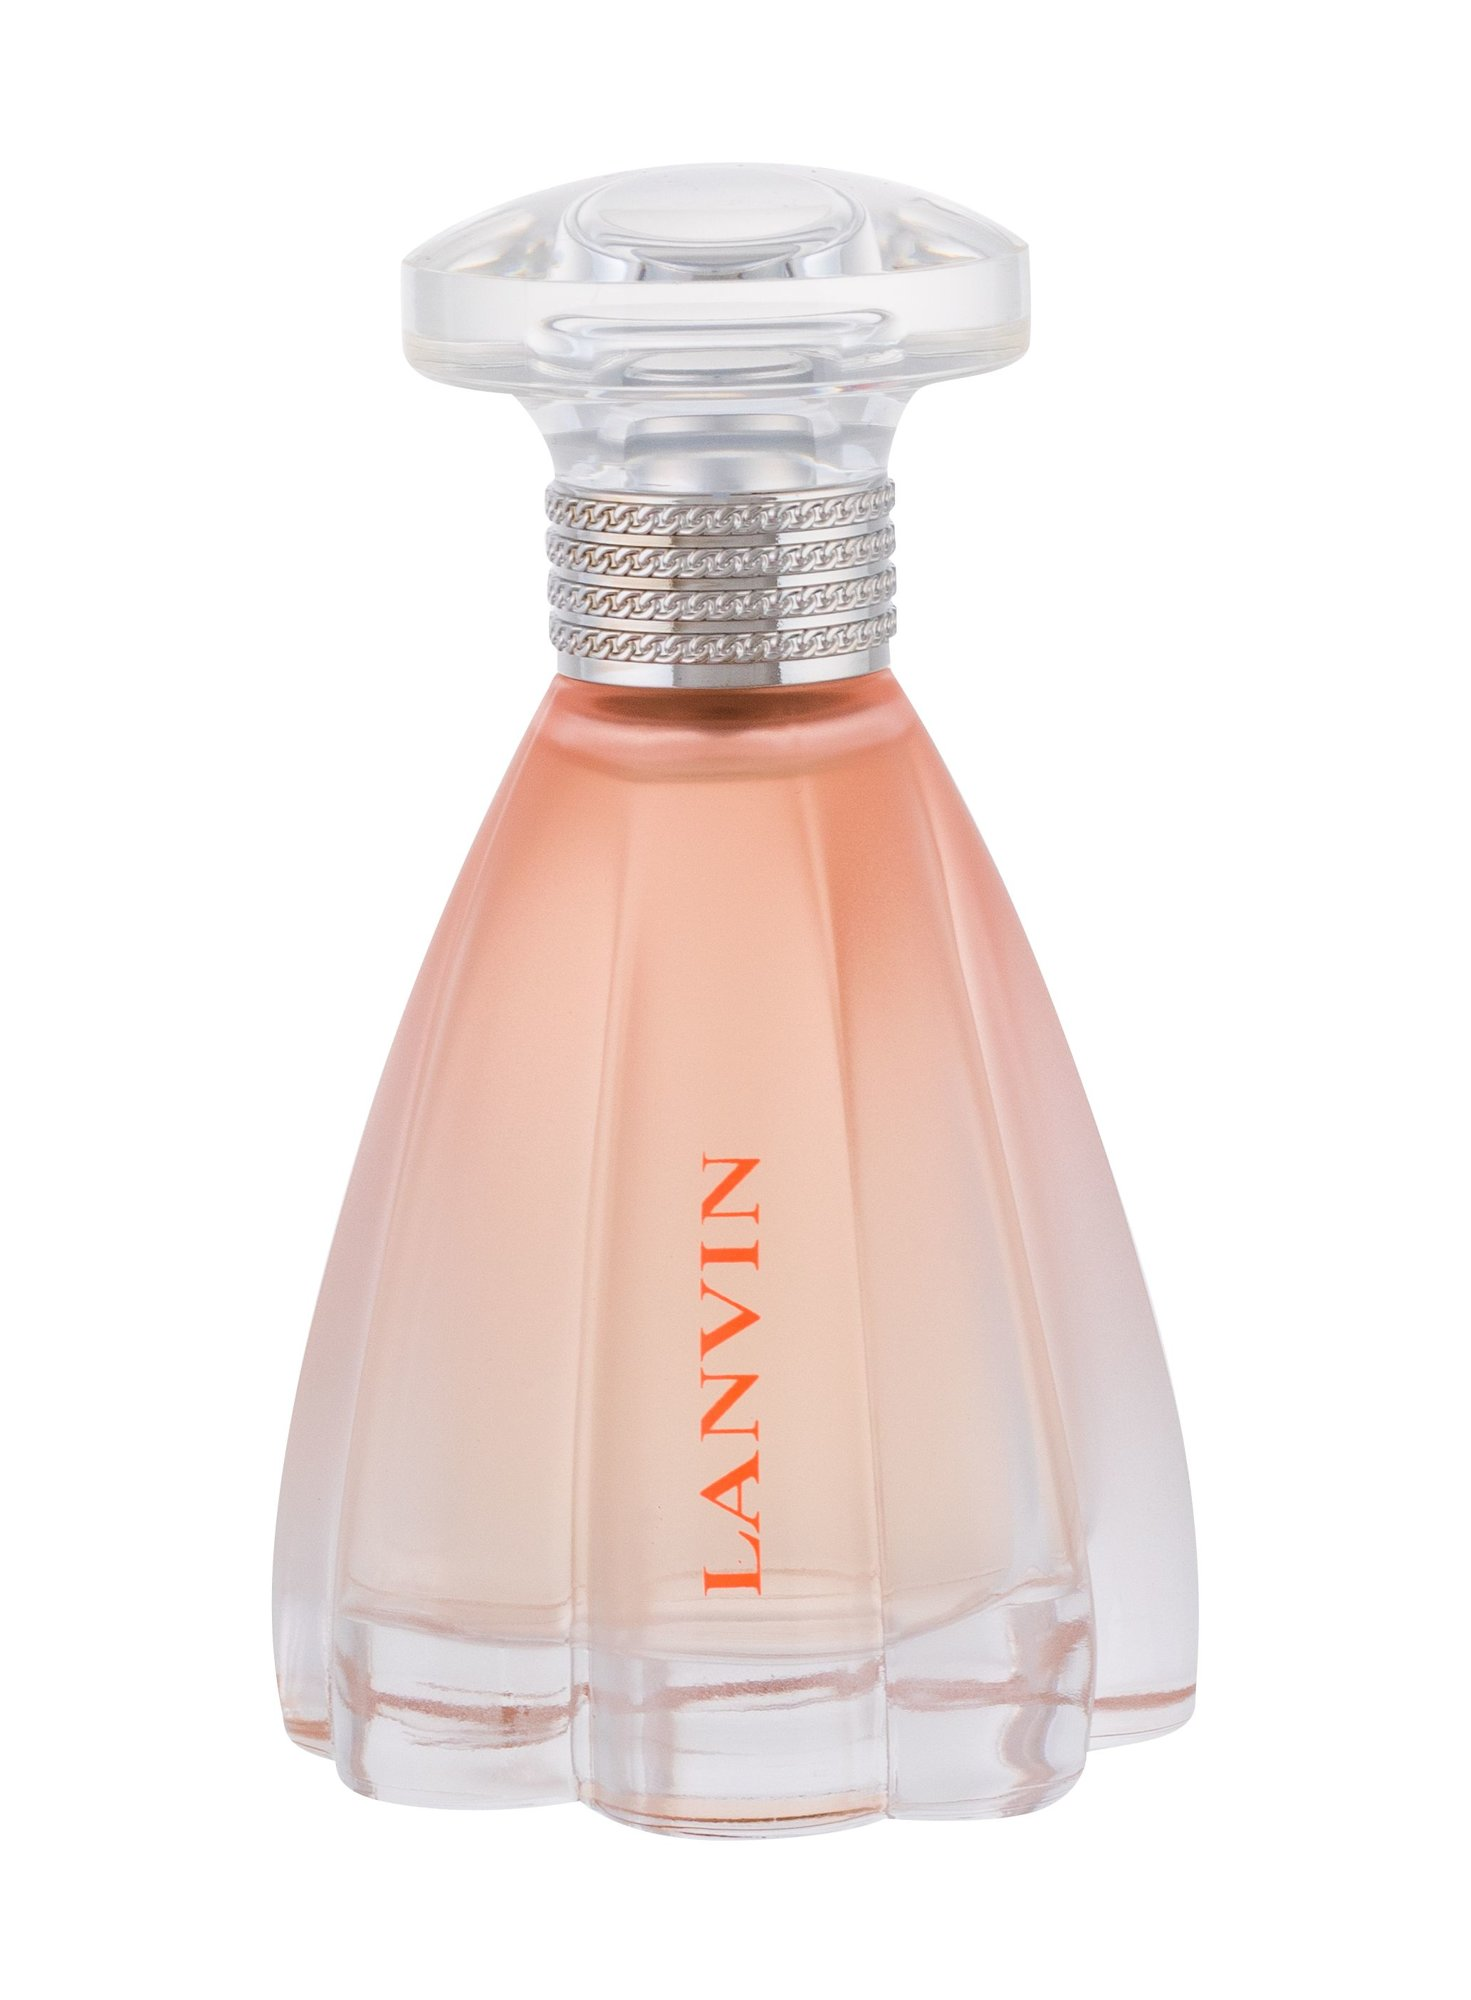 Lanvin Modern Princess Eau de Toilette 60ml